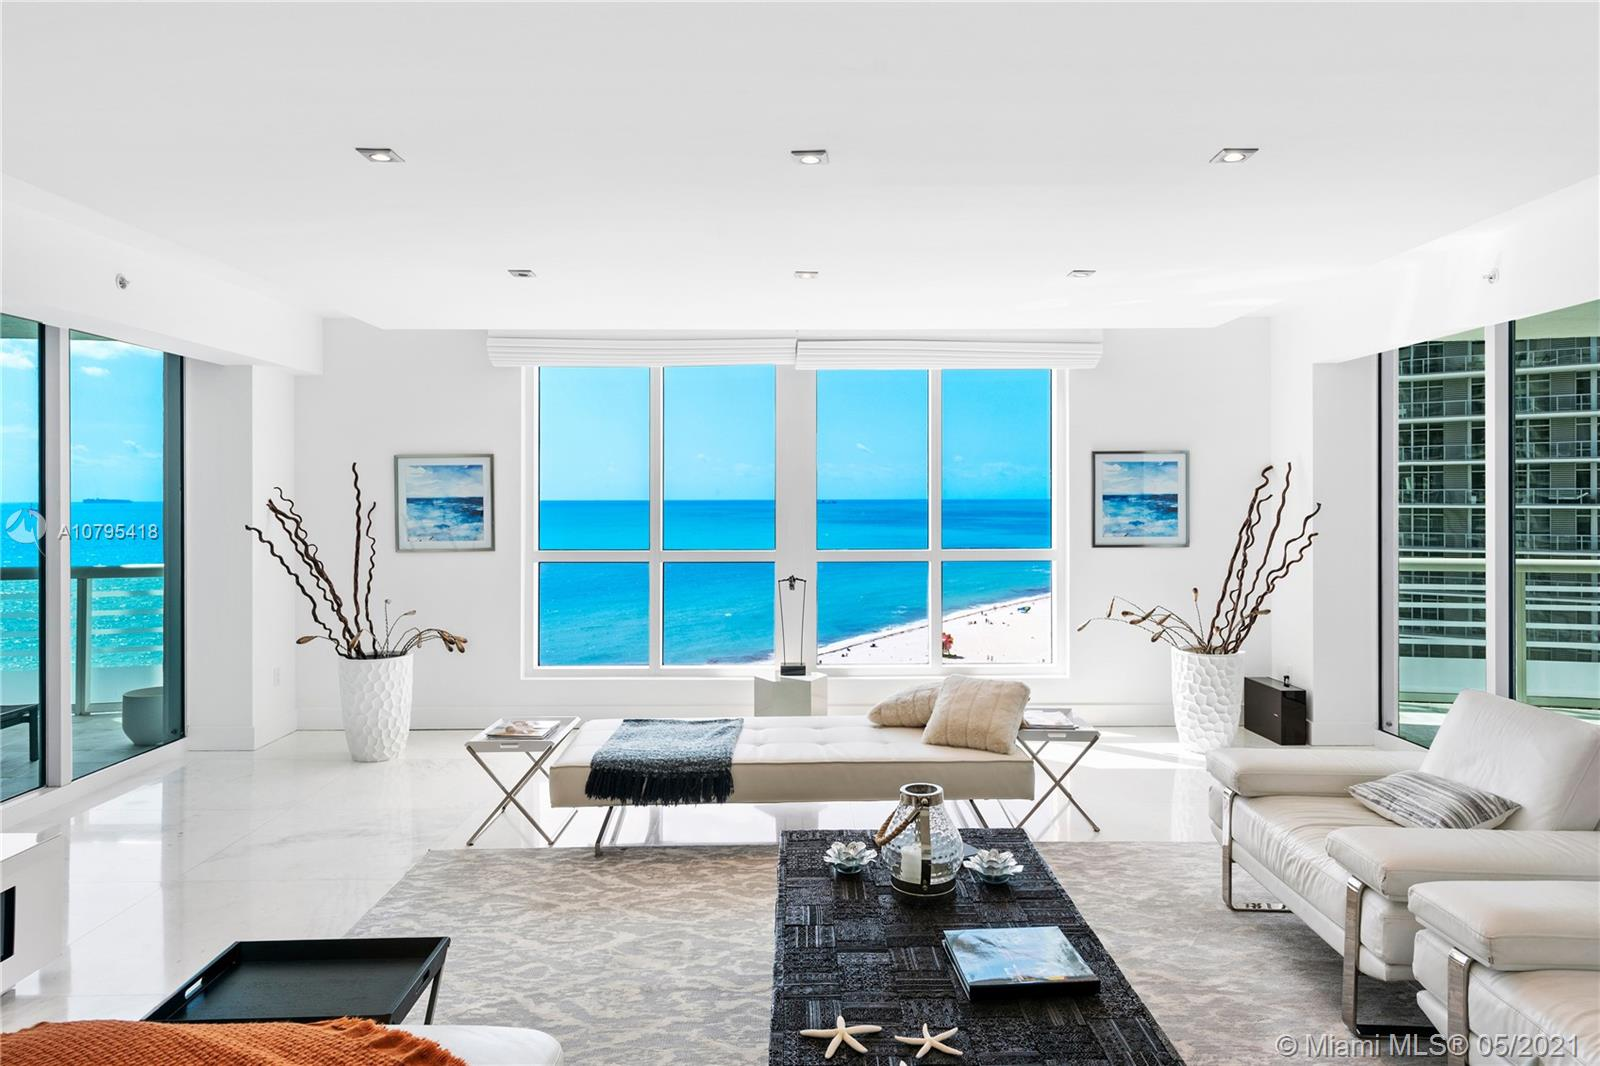 Stunning Oceanfront 3 bedroom condo. Recently renovated, updated and tastefully decorated with beautiful sunset and sunrise views. This is a must-see for anyone looking for an oceanfront residence in the Faena District of Miami Beach